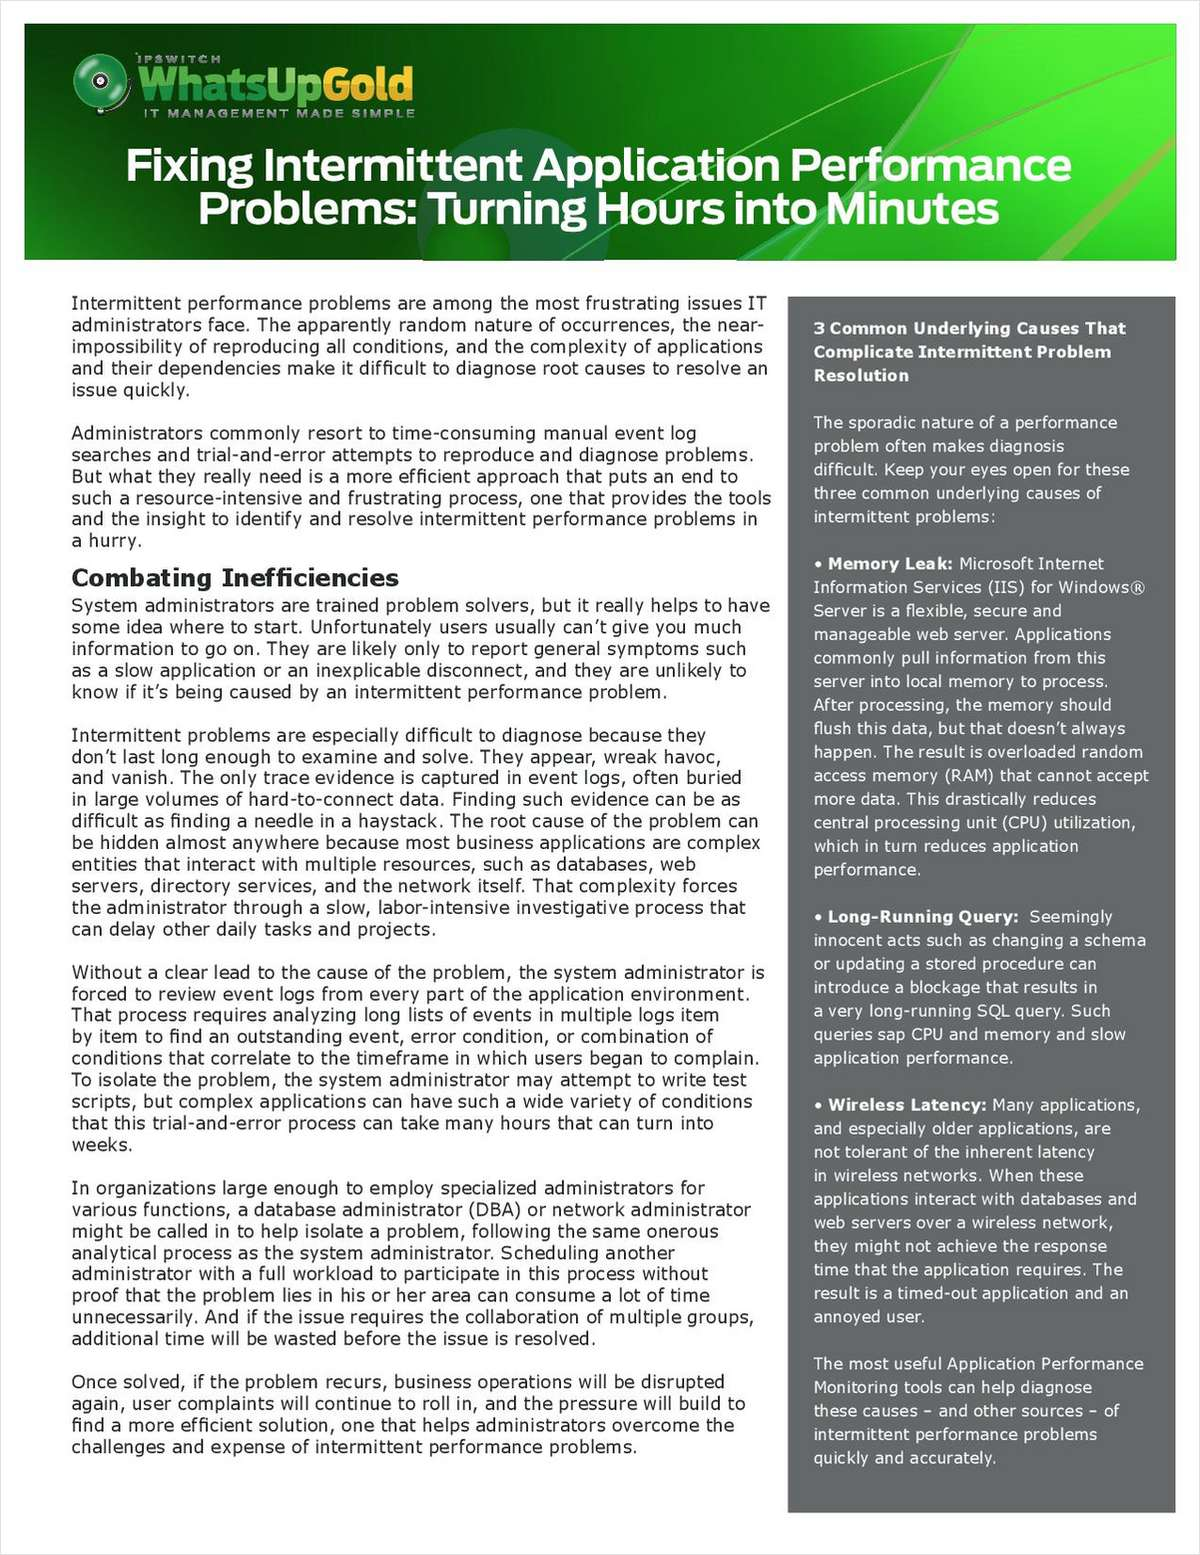 Fixing Intermittent Performance Problems